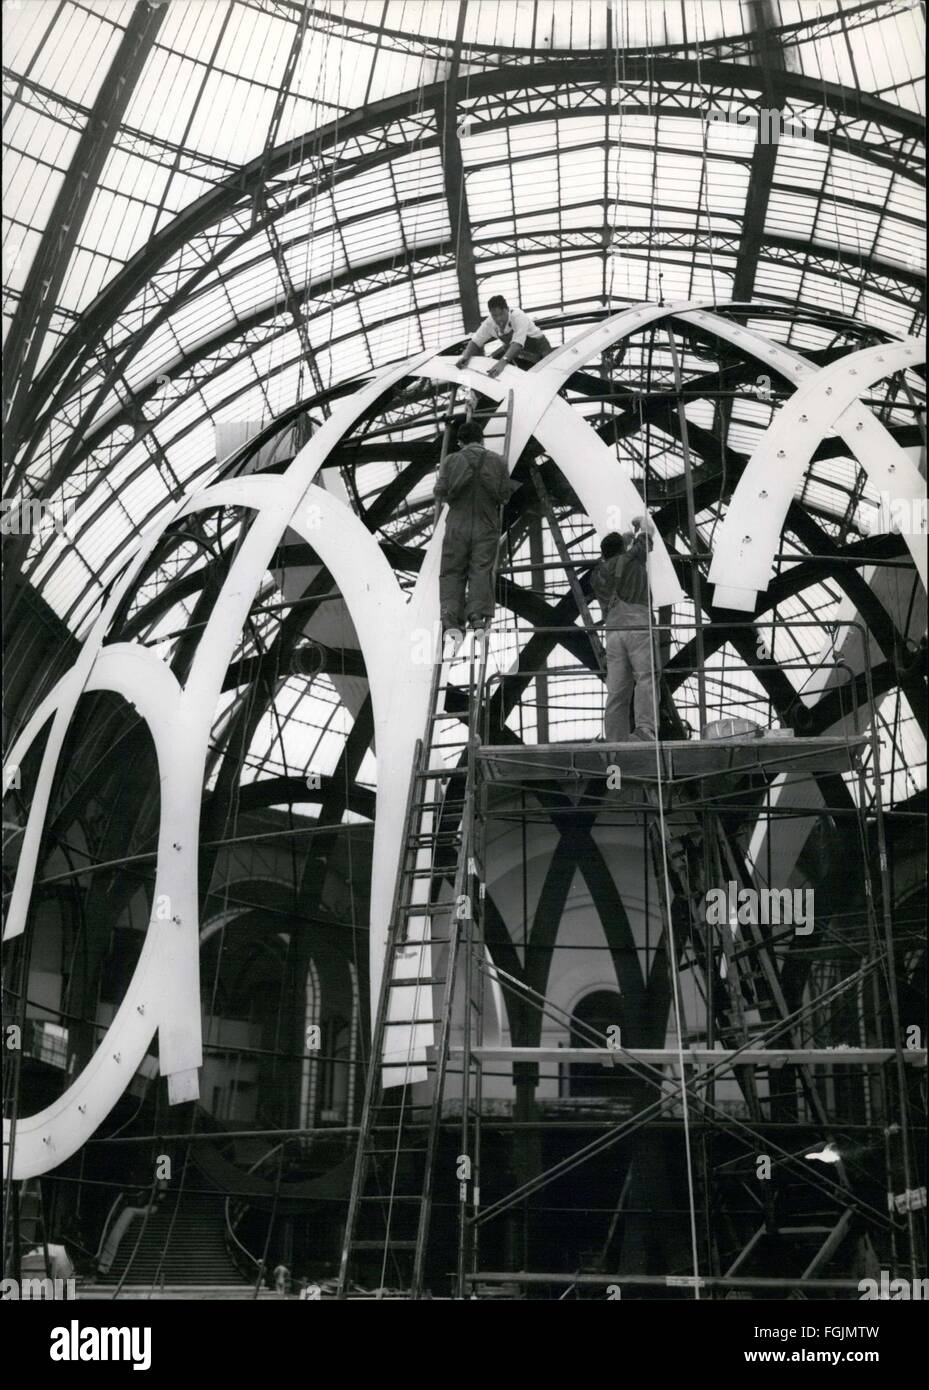 1972 - Automobile Show Preparation: As Every Year, At The Paris Grand Palais, Will Be Held The Automobile Show Where - Stock Image